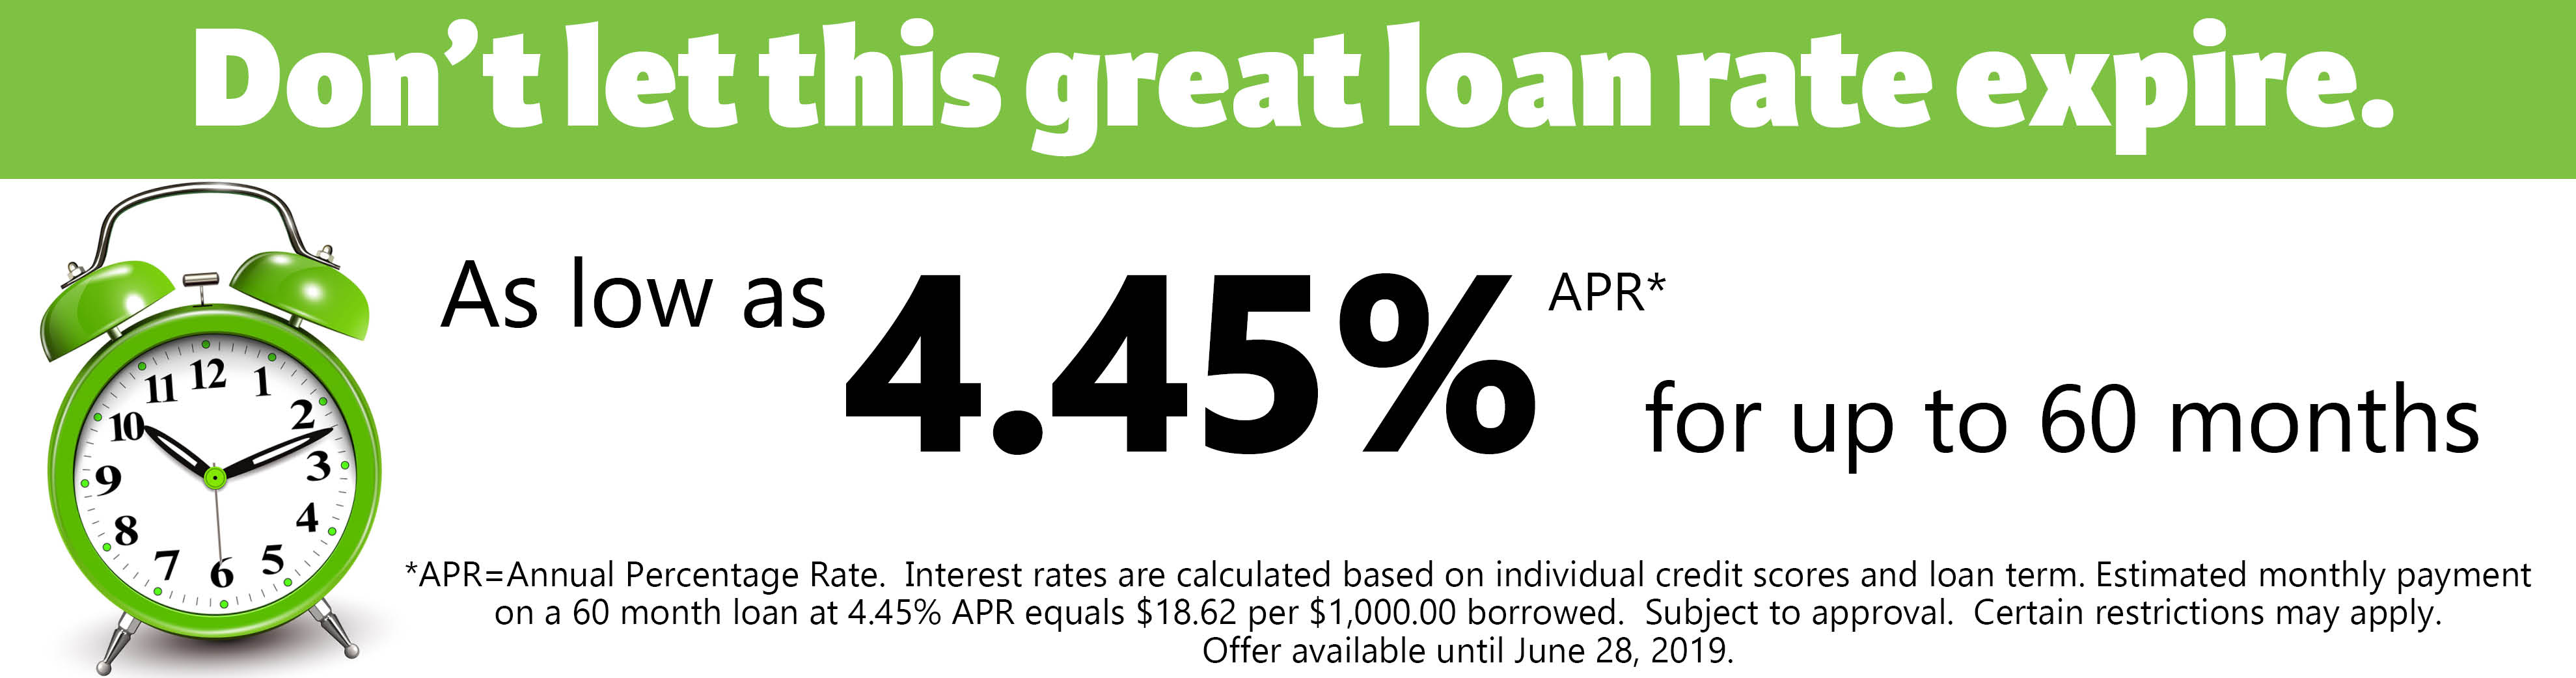 Loans as low as 4.45% annual percentage rate for up to 60 months upon approval